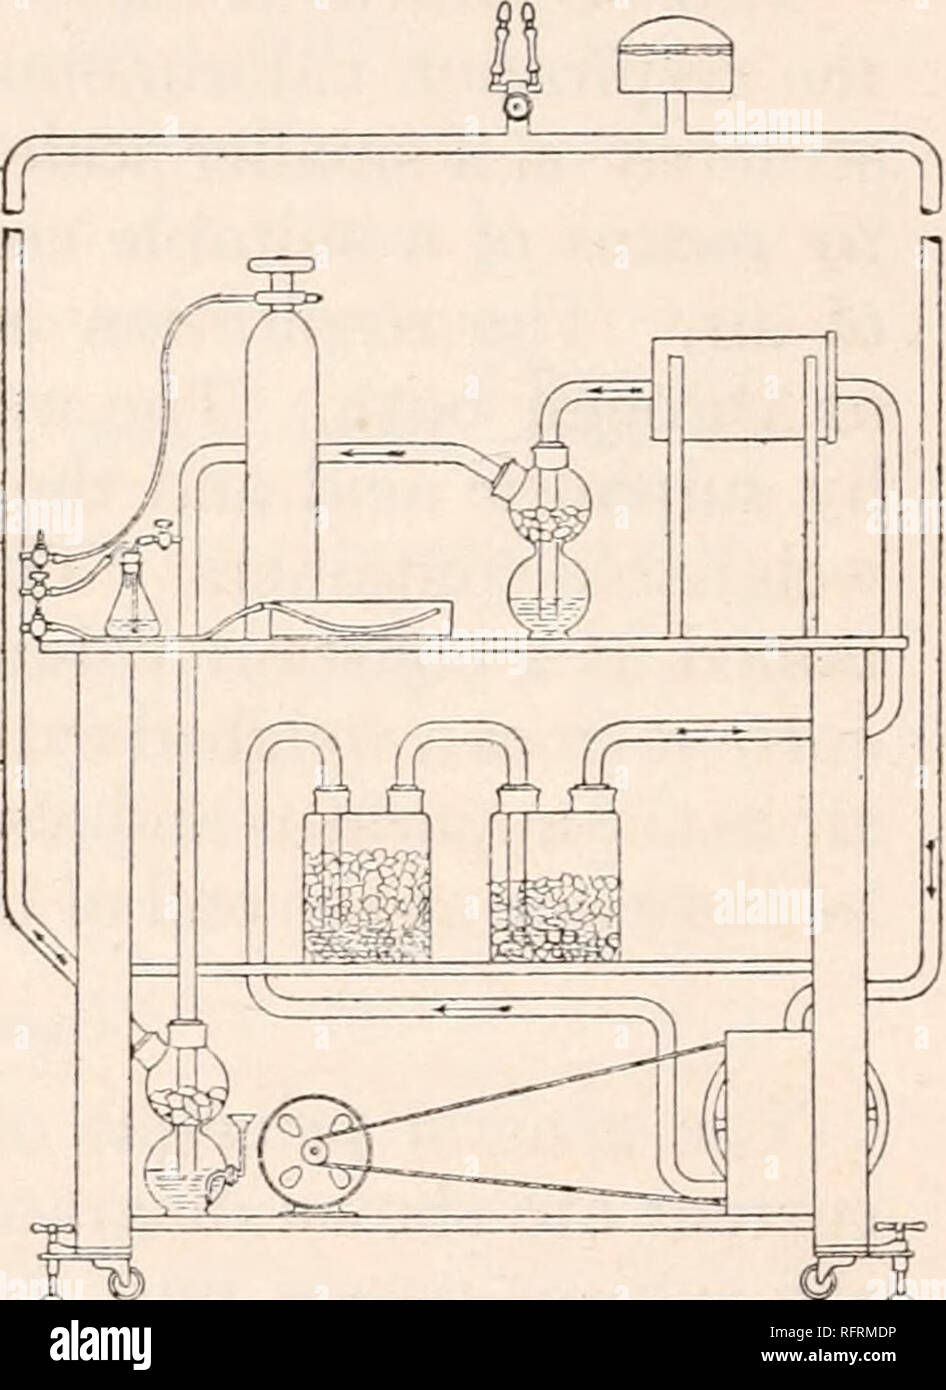 hight resolution of diagrammatic scheme of air circuit and purifying arrangements of tension equalizer unit fig 3 diagram showing arrangement of benedict respiration